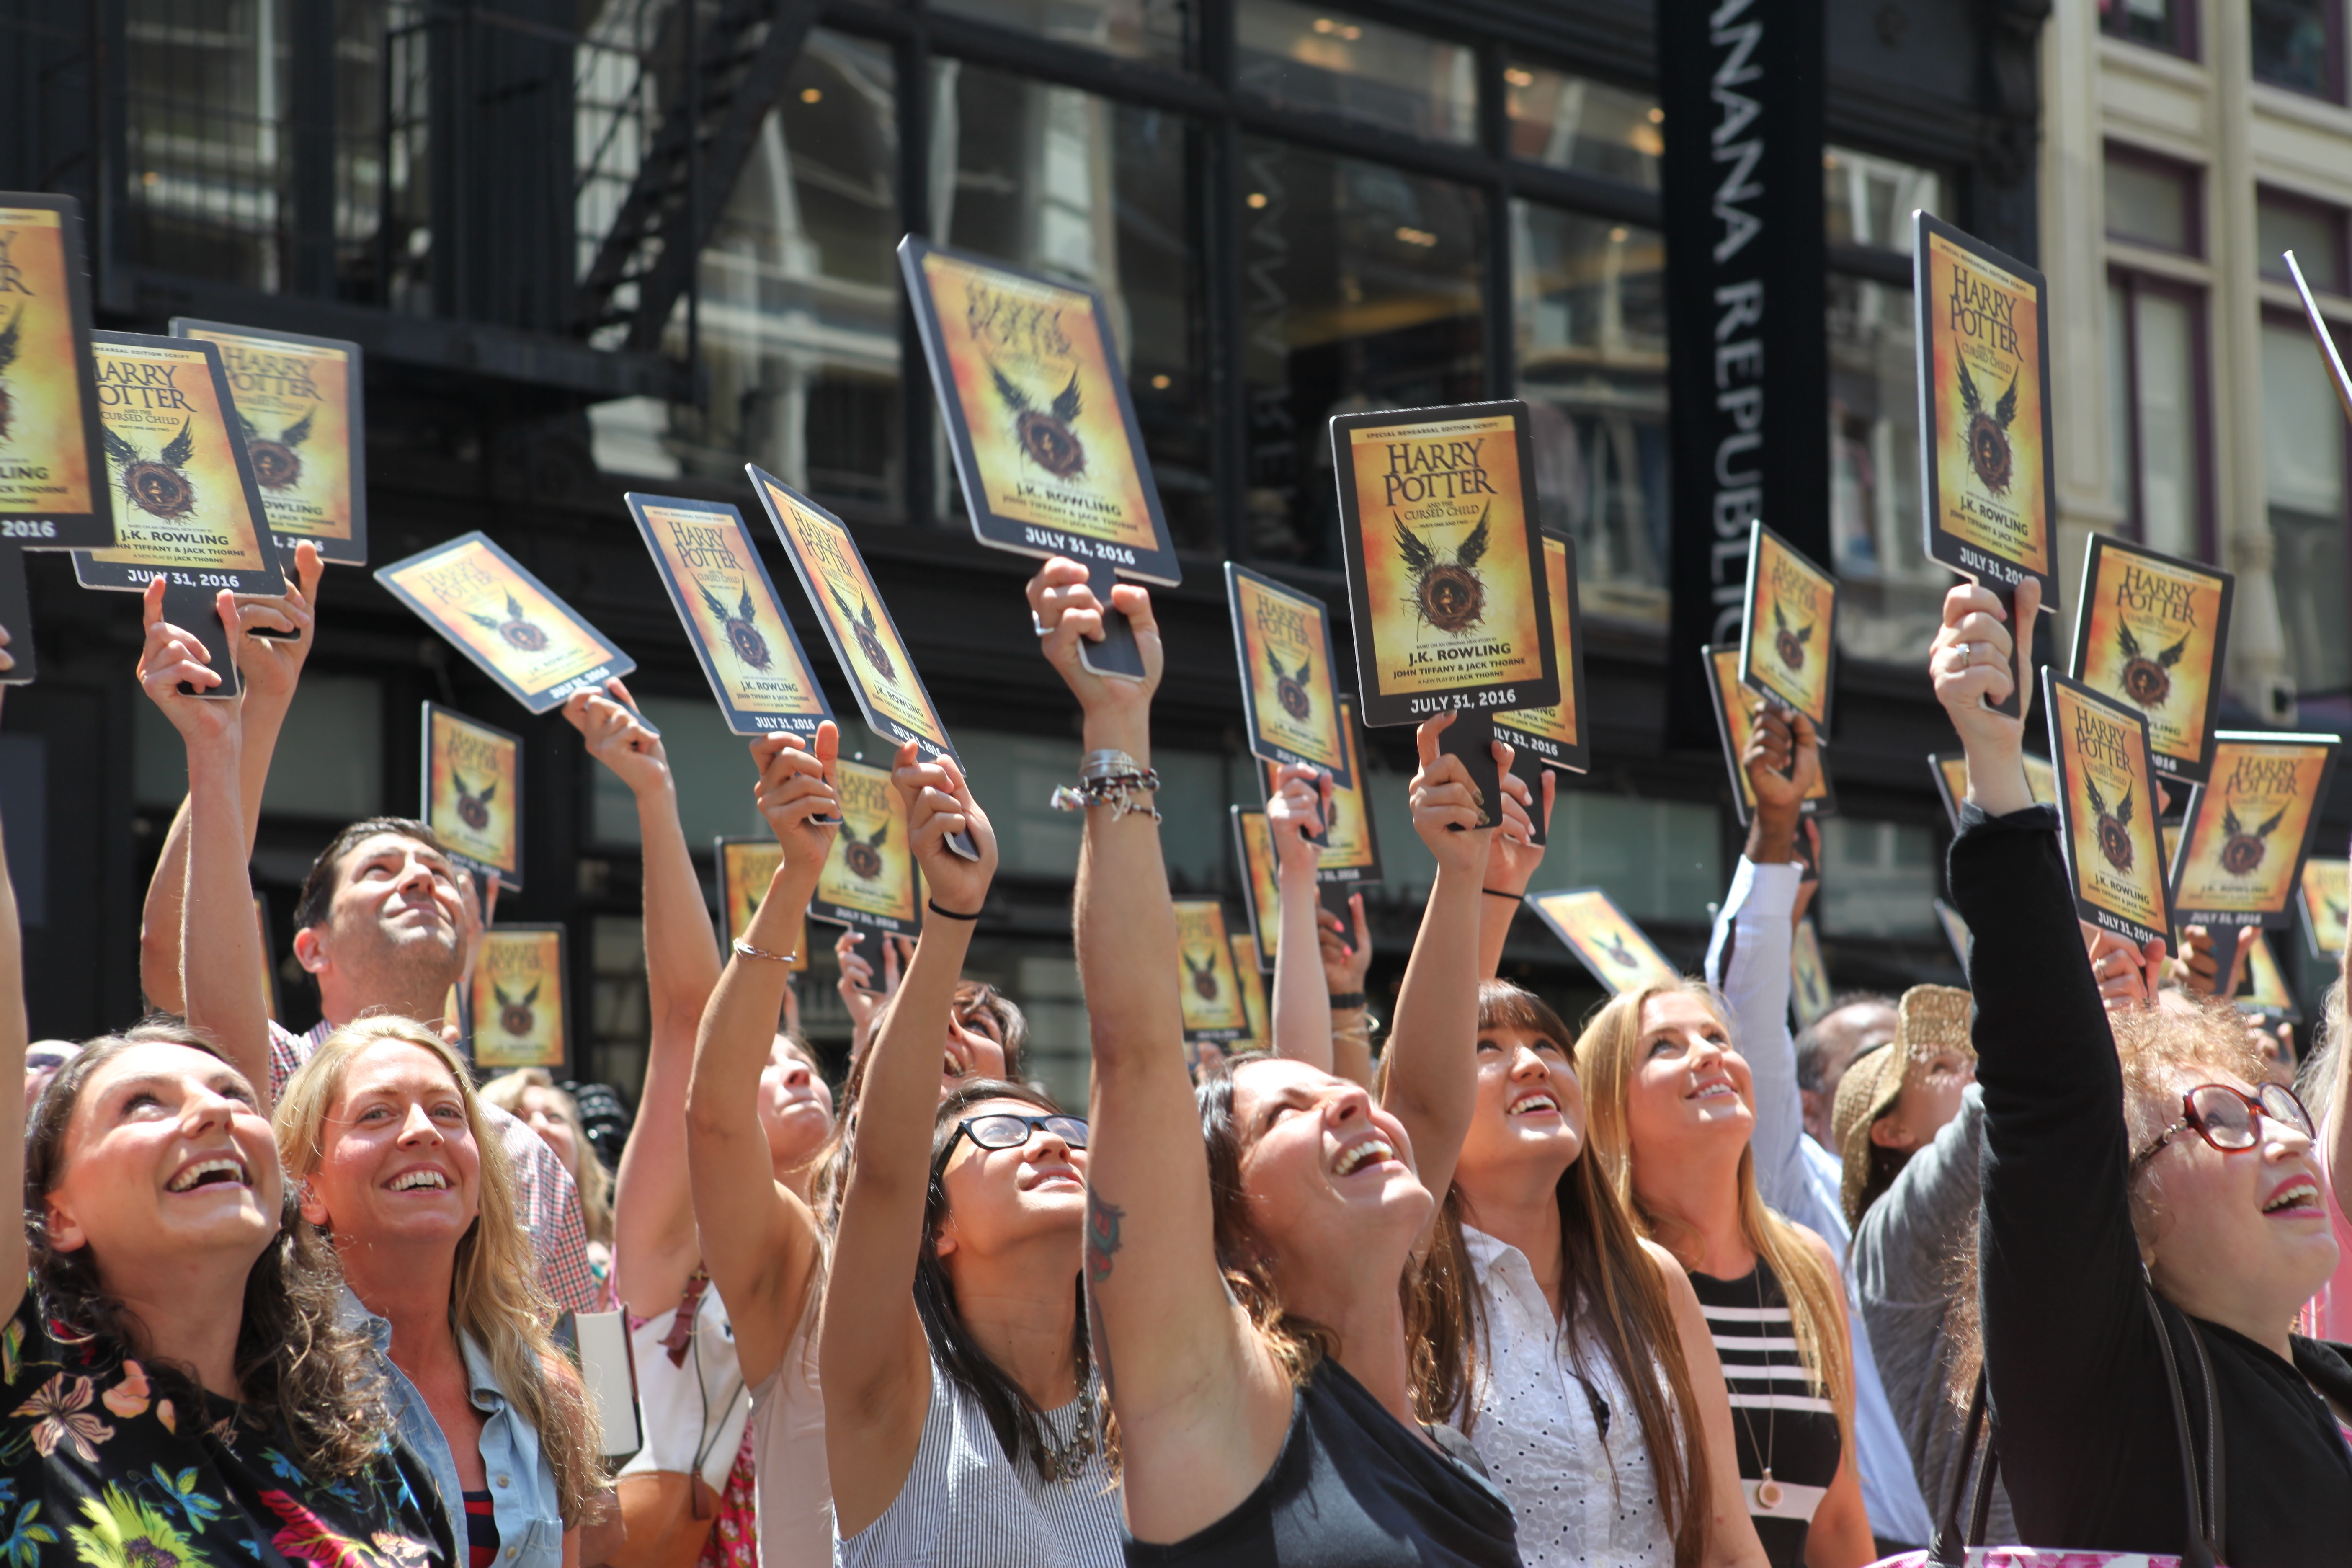 """A """"Muggle Mob"""" of 300 Harry Potter fans fills the street in front of the Scholastic headquarters building in New York City on July 21, 2016 to celebrate the upcoming release of Harry Potter and the Cursed Child Parts One and Two."""